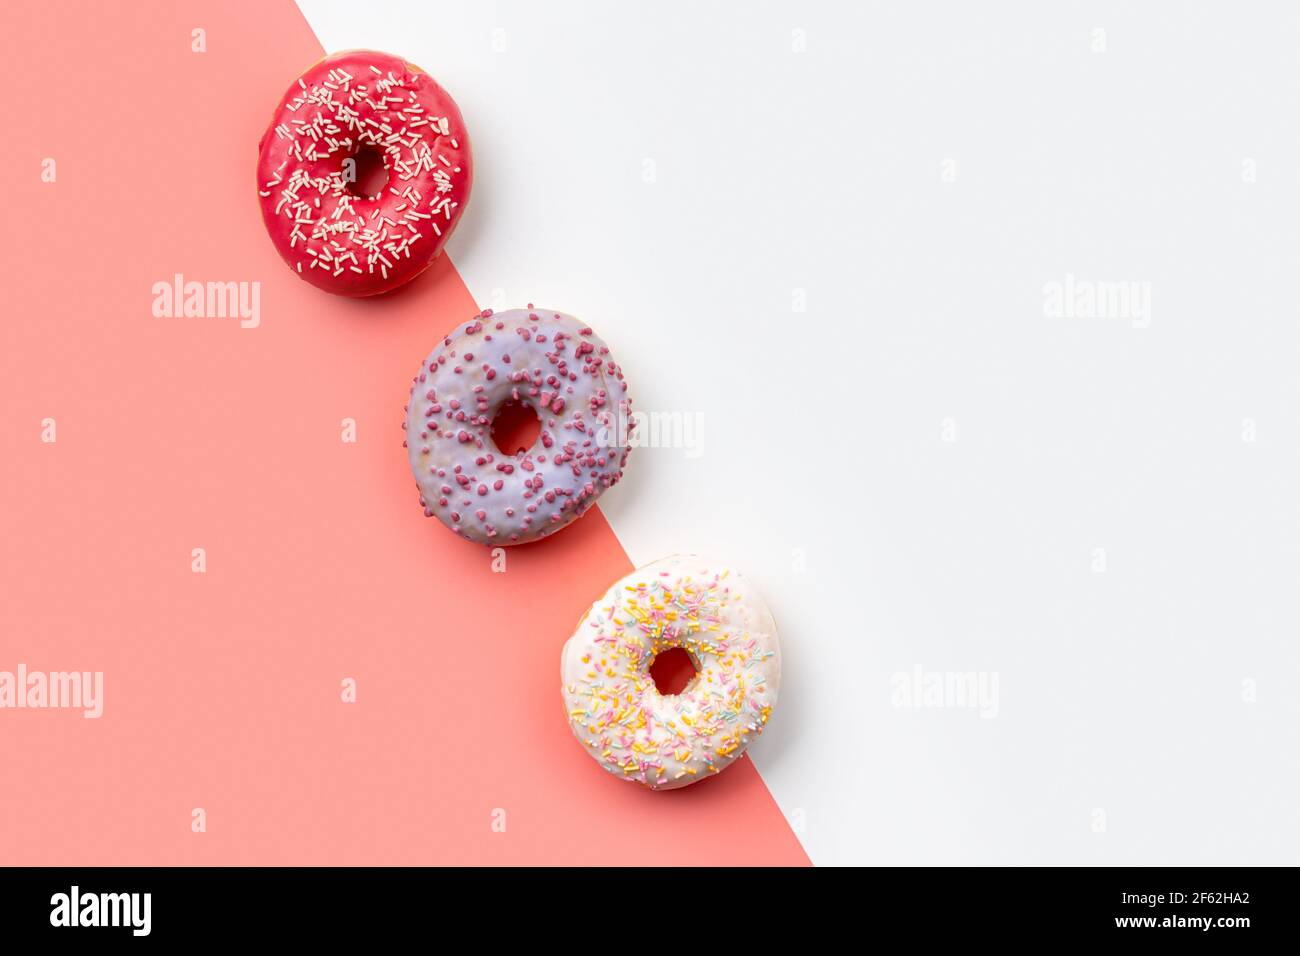 Download Donut Mockup High Resolution Stock Photography And Images Alamy